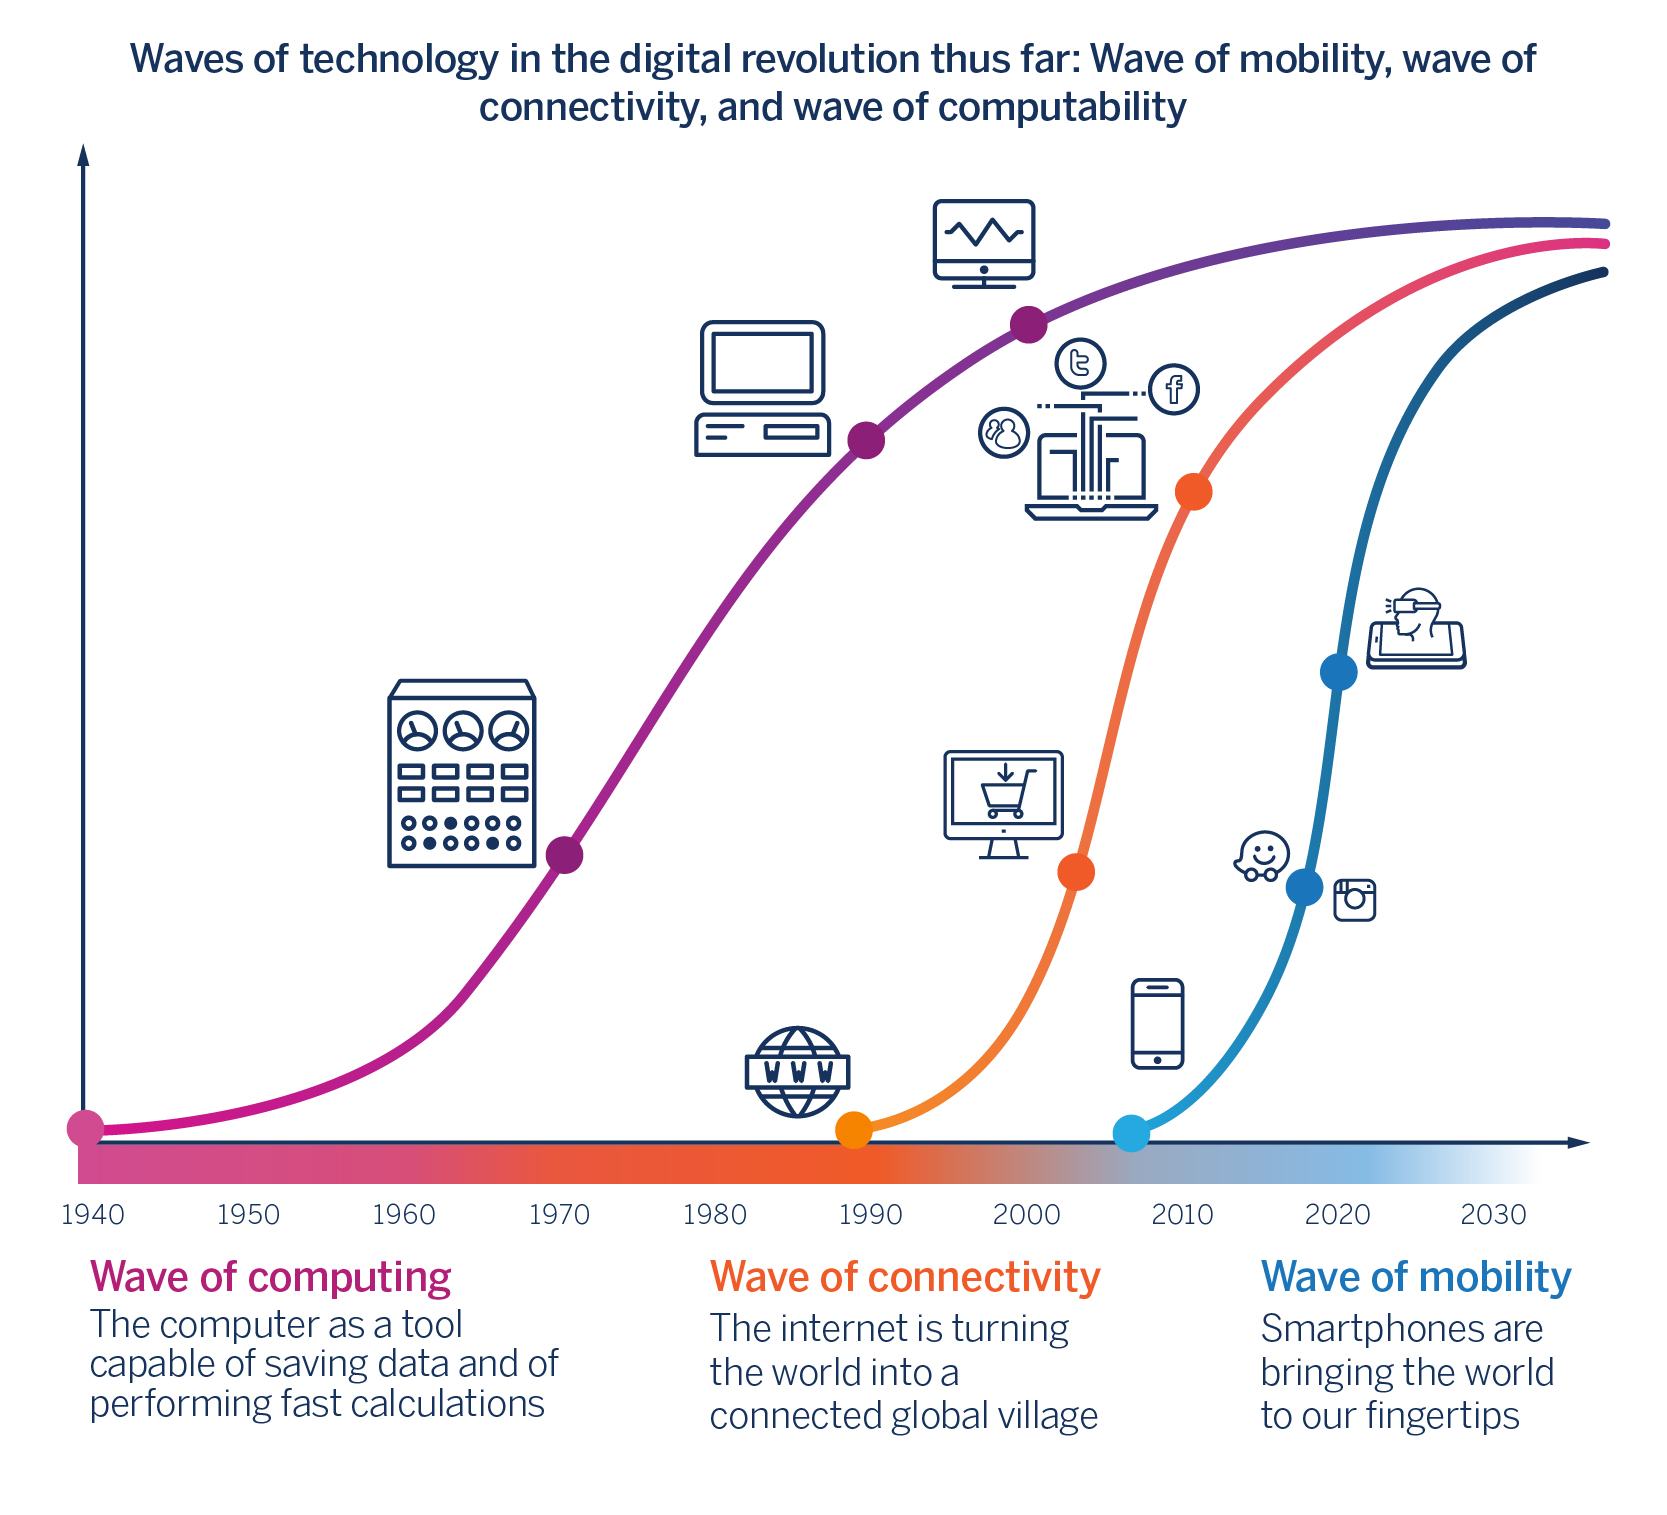 Waves of technology in the digital revolution thus far: Wave of mobility, wave of connectivity, and wave of computability